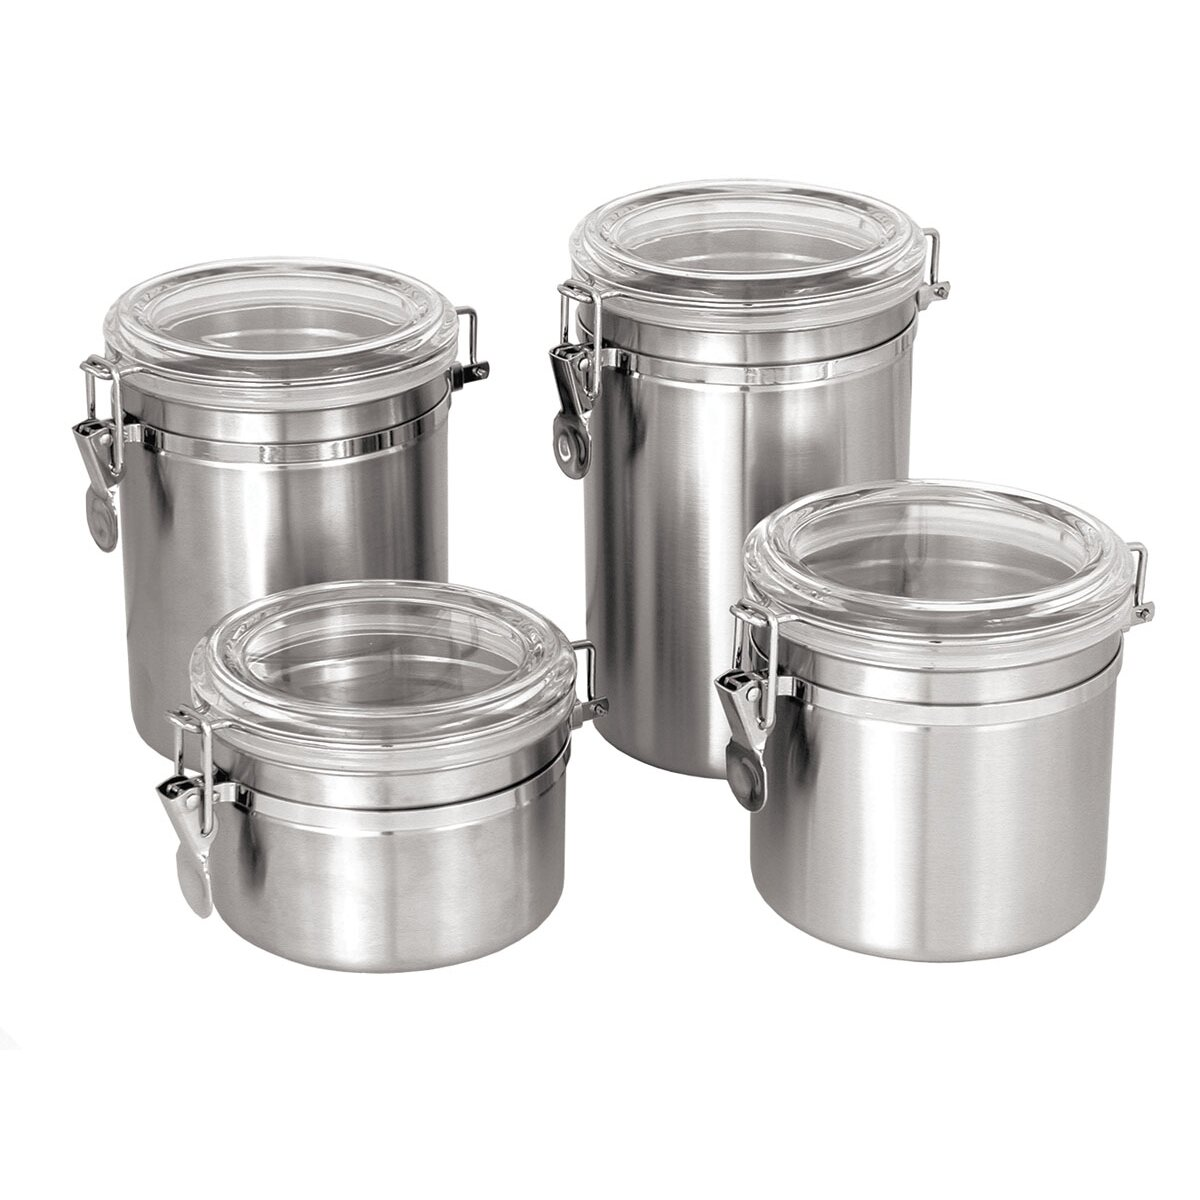 Update International 64 Oz Stainless Steel Canister With